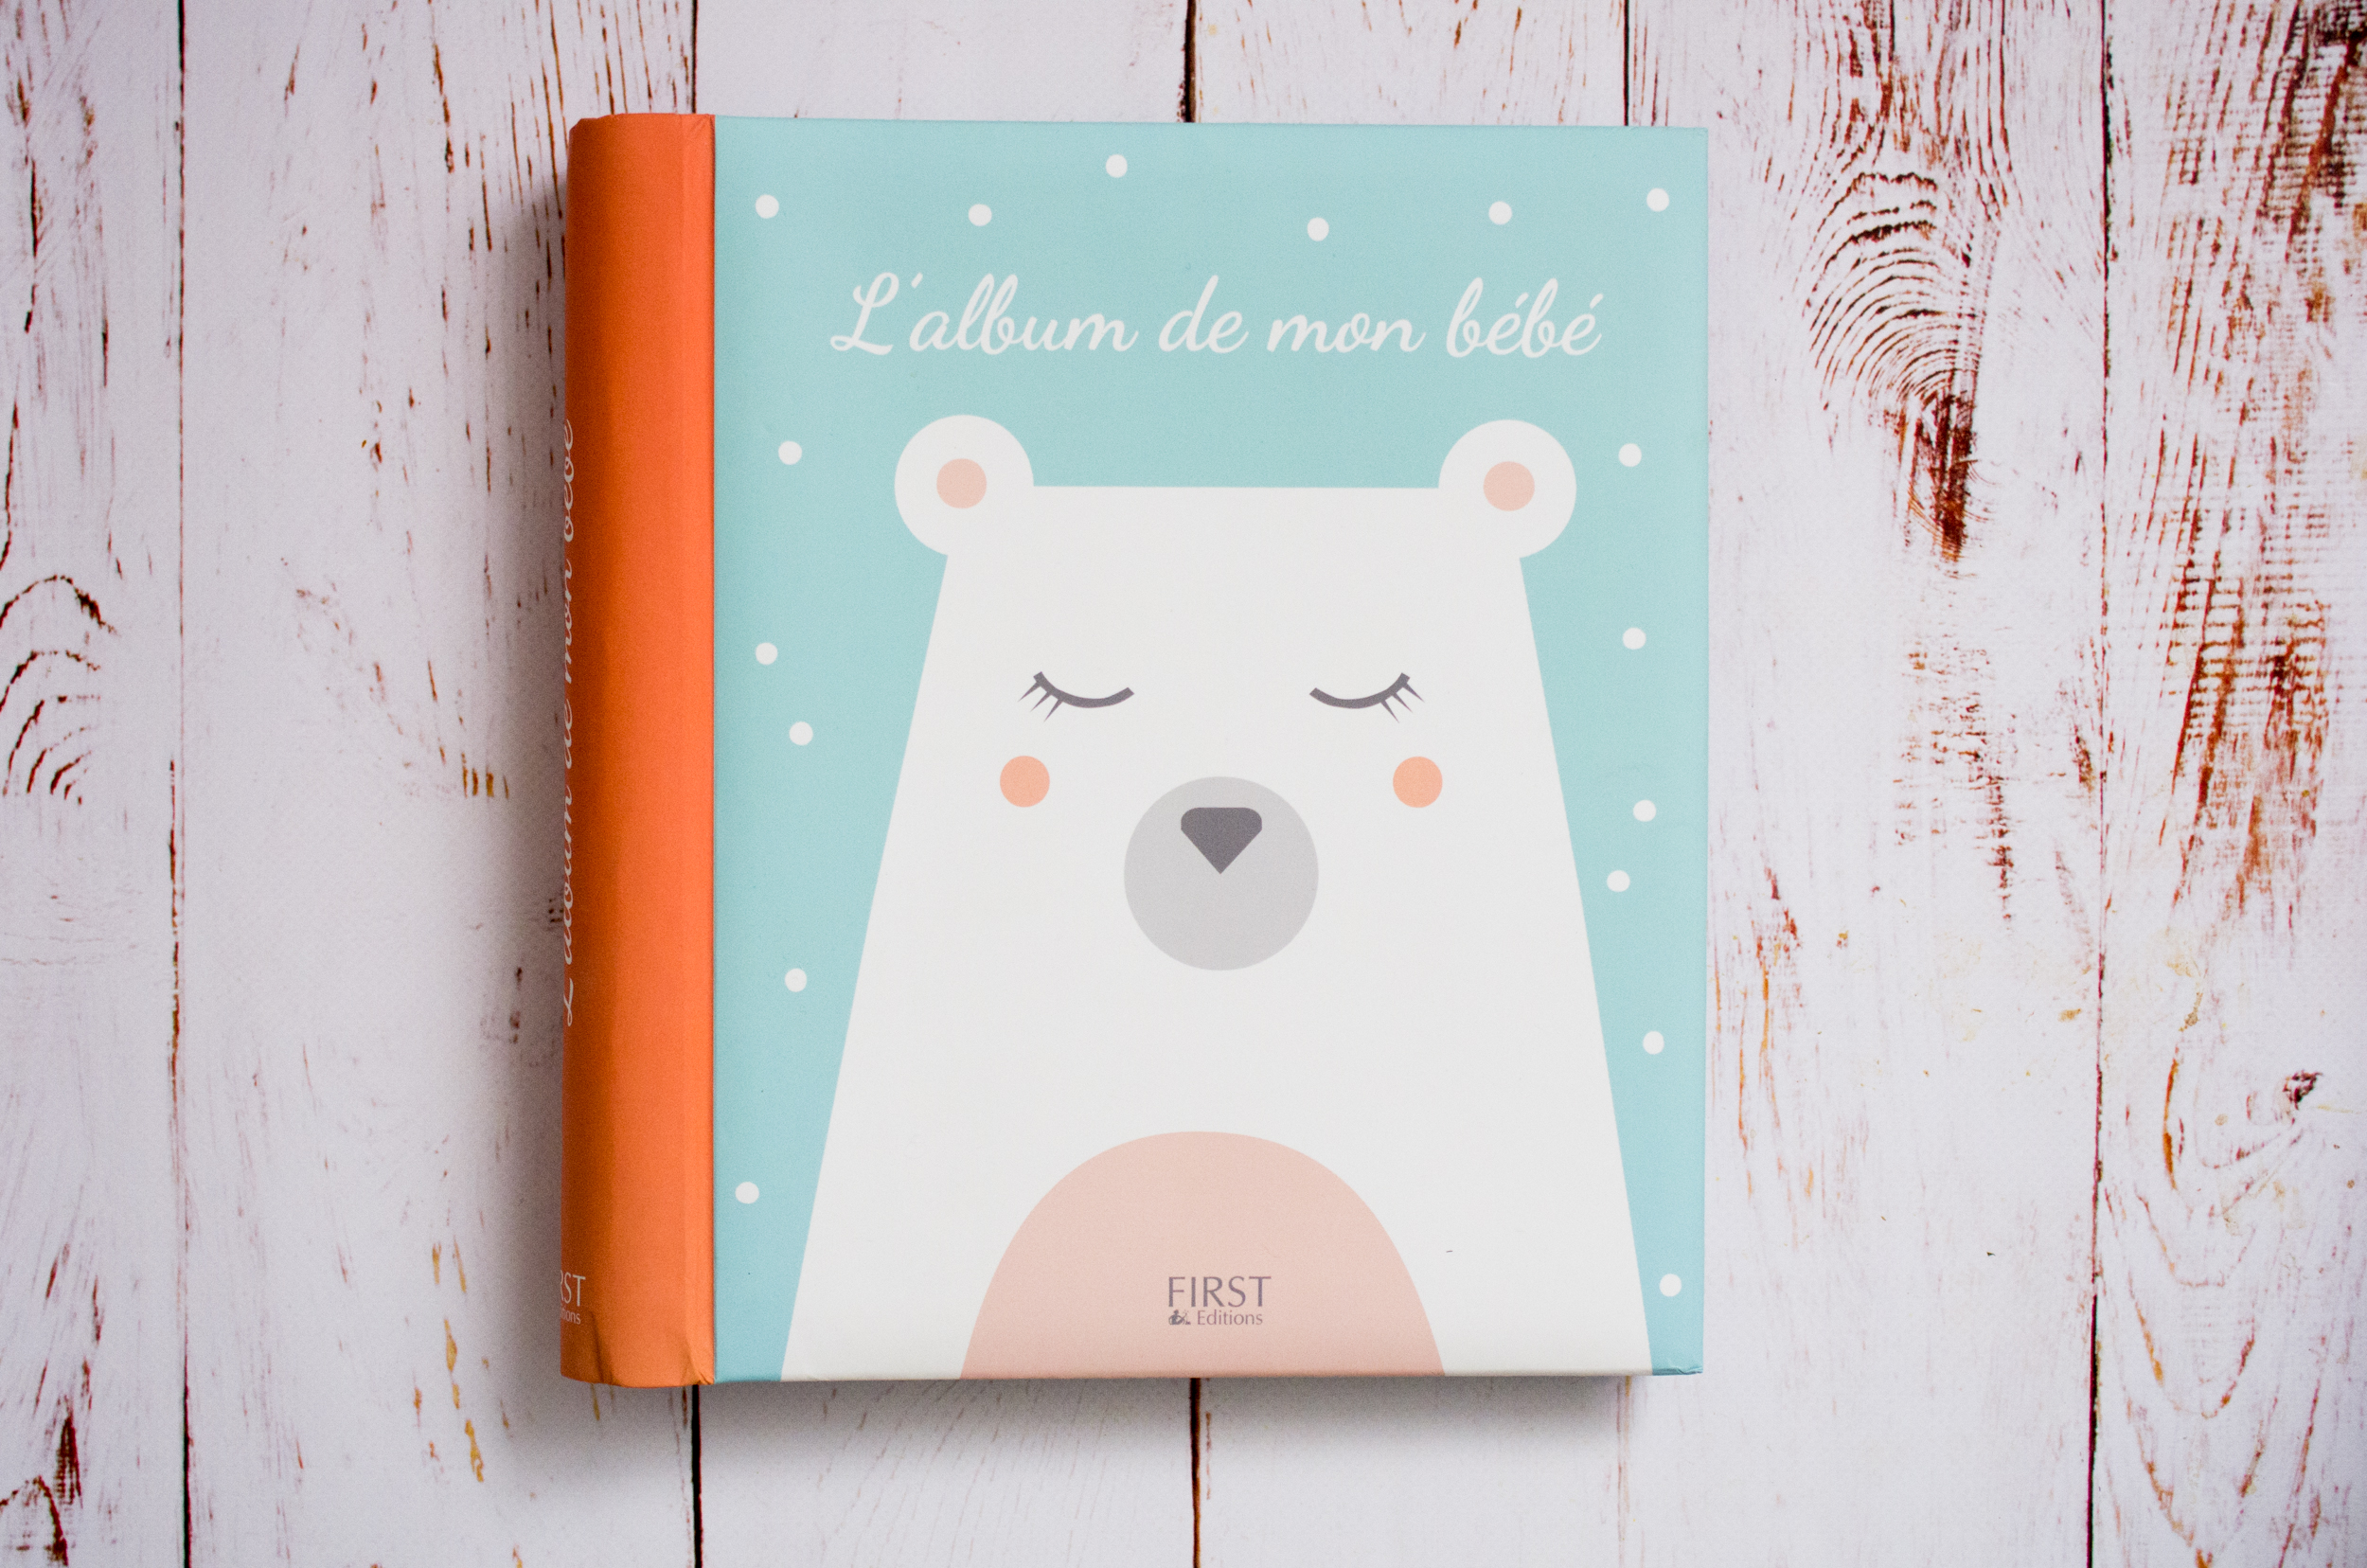 livre-mon-album-de-bebe-charline-freyburger-mola-editions-first.jpg